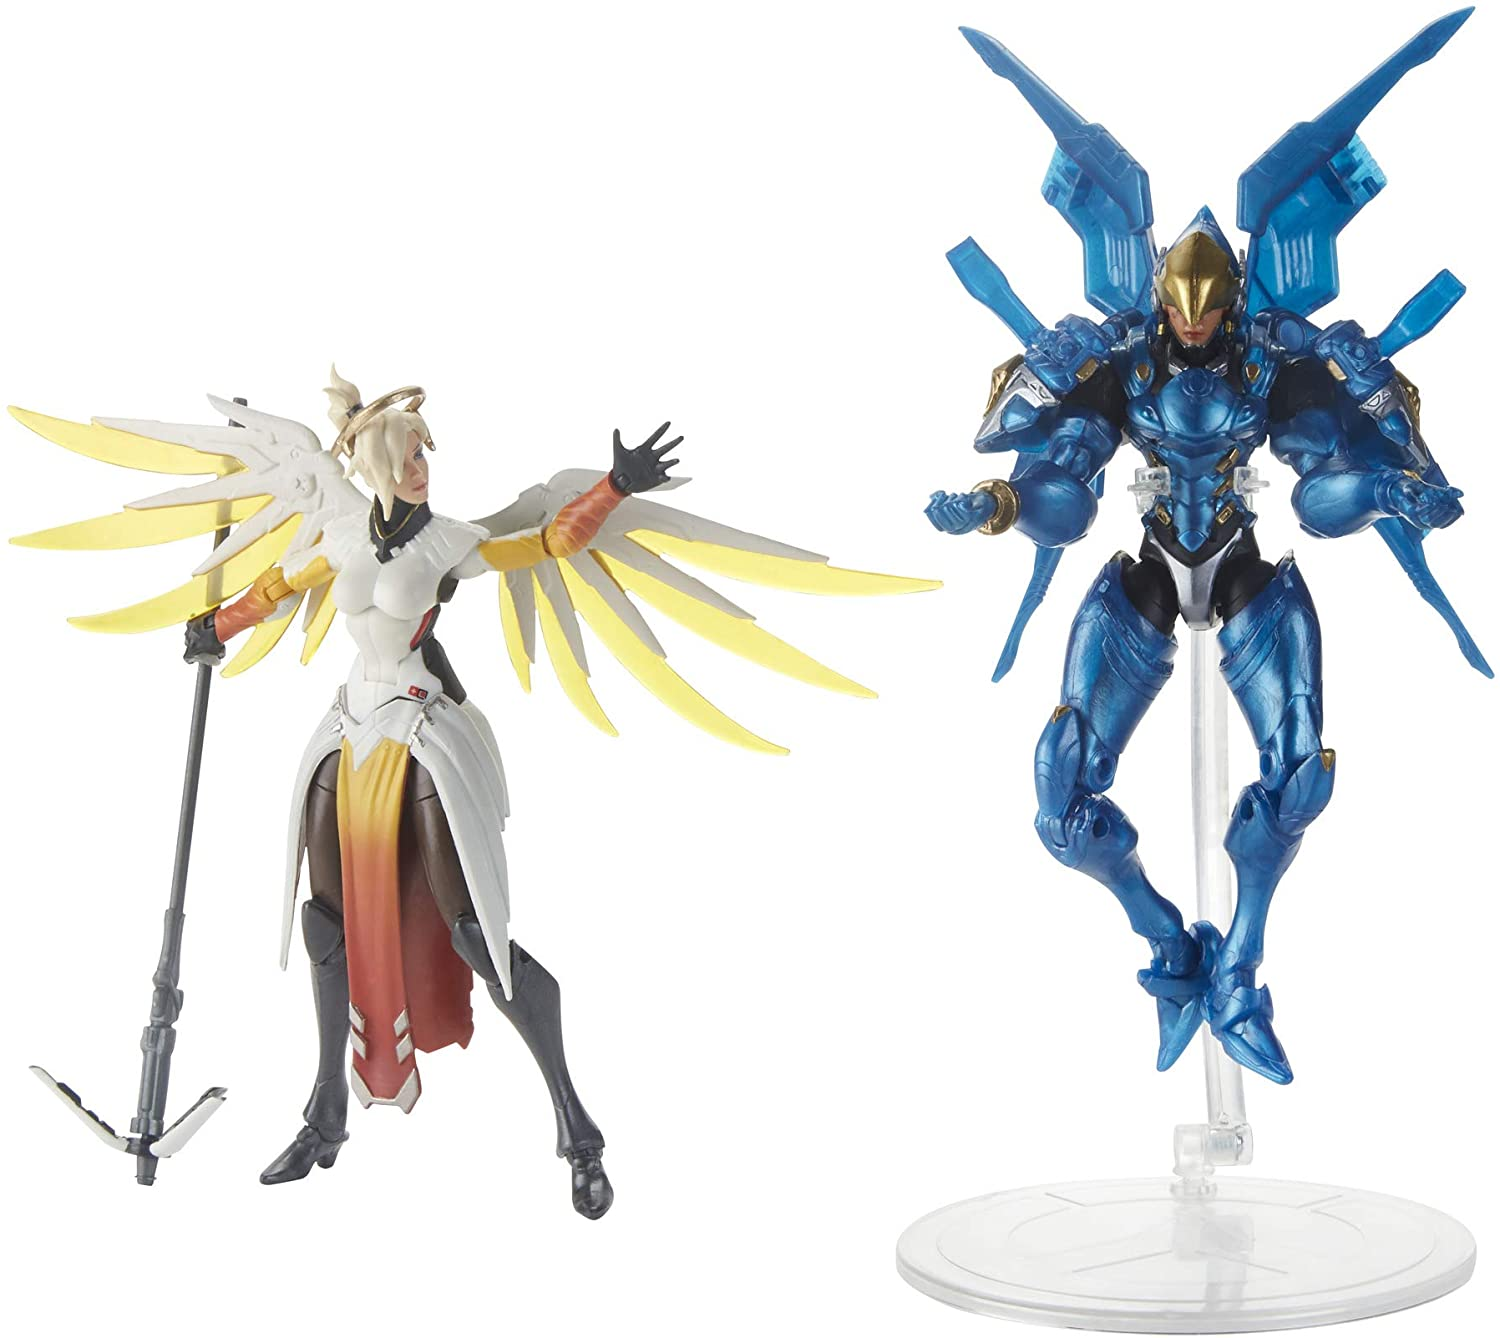 20. Hasbro Overwatch Ultimates Series Pharah and Mercy Dual Pack - Collectible Action Figures with Accessories